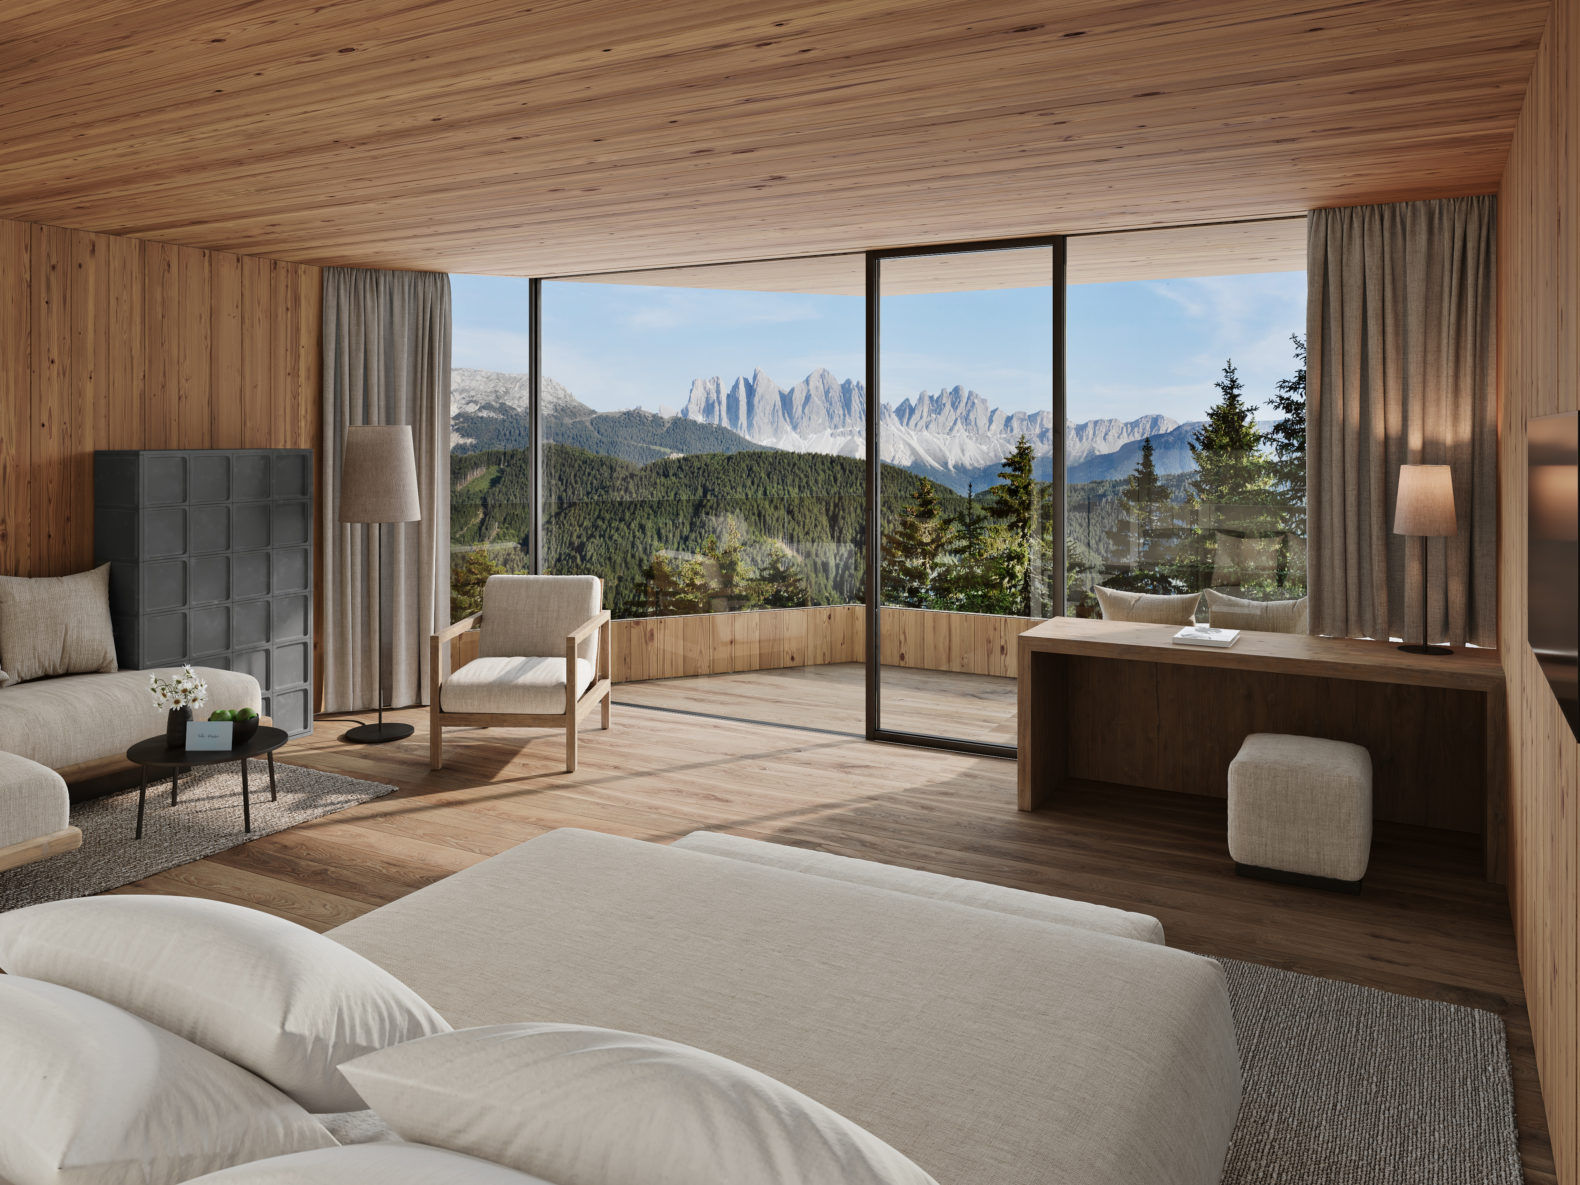 forestis-spacious-suiten-tower-suite-panoramic-view-mountains-nature-healing-hotels-of-the-world-southtyrol-italy